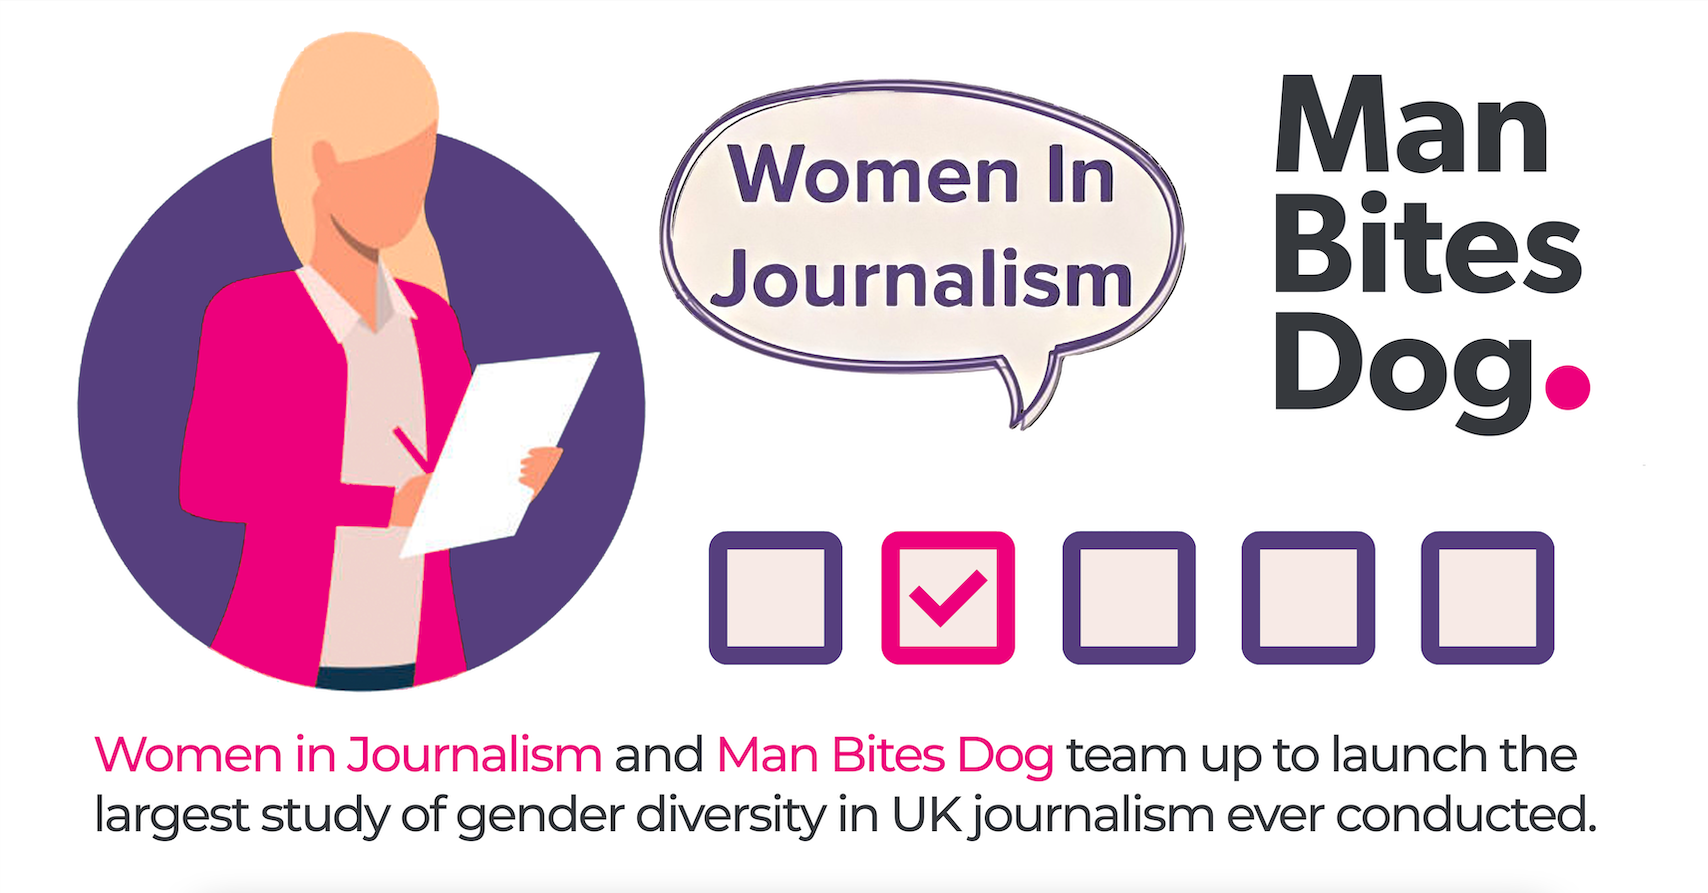 Women in Journalism & Man Bites Dog are calling for journalists to take part in one of the largest and most comprehensive studies.